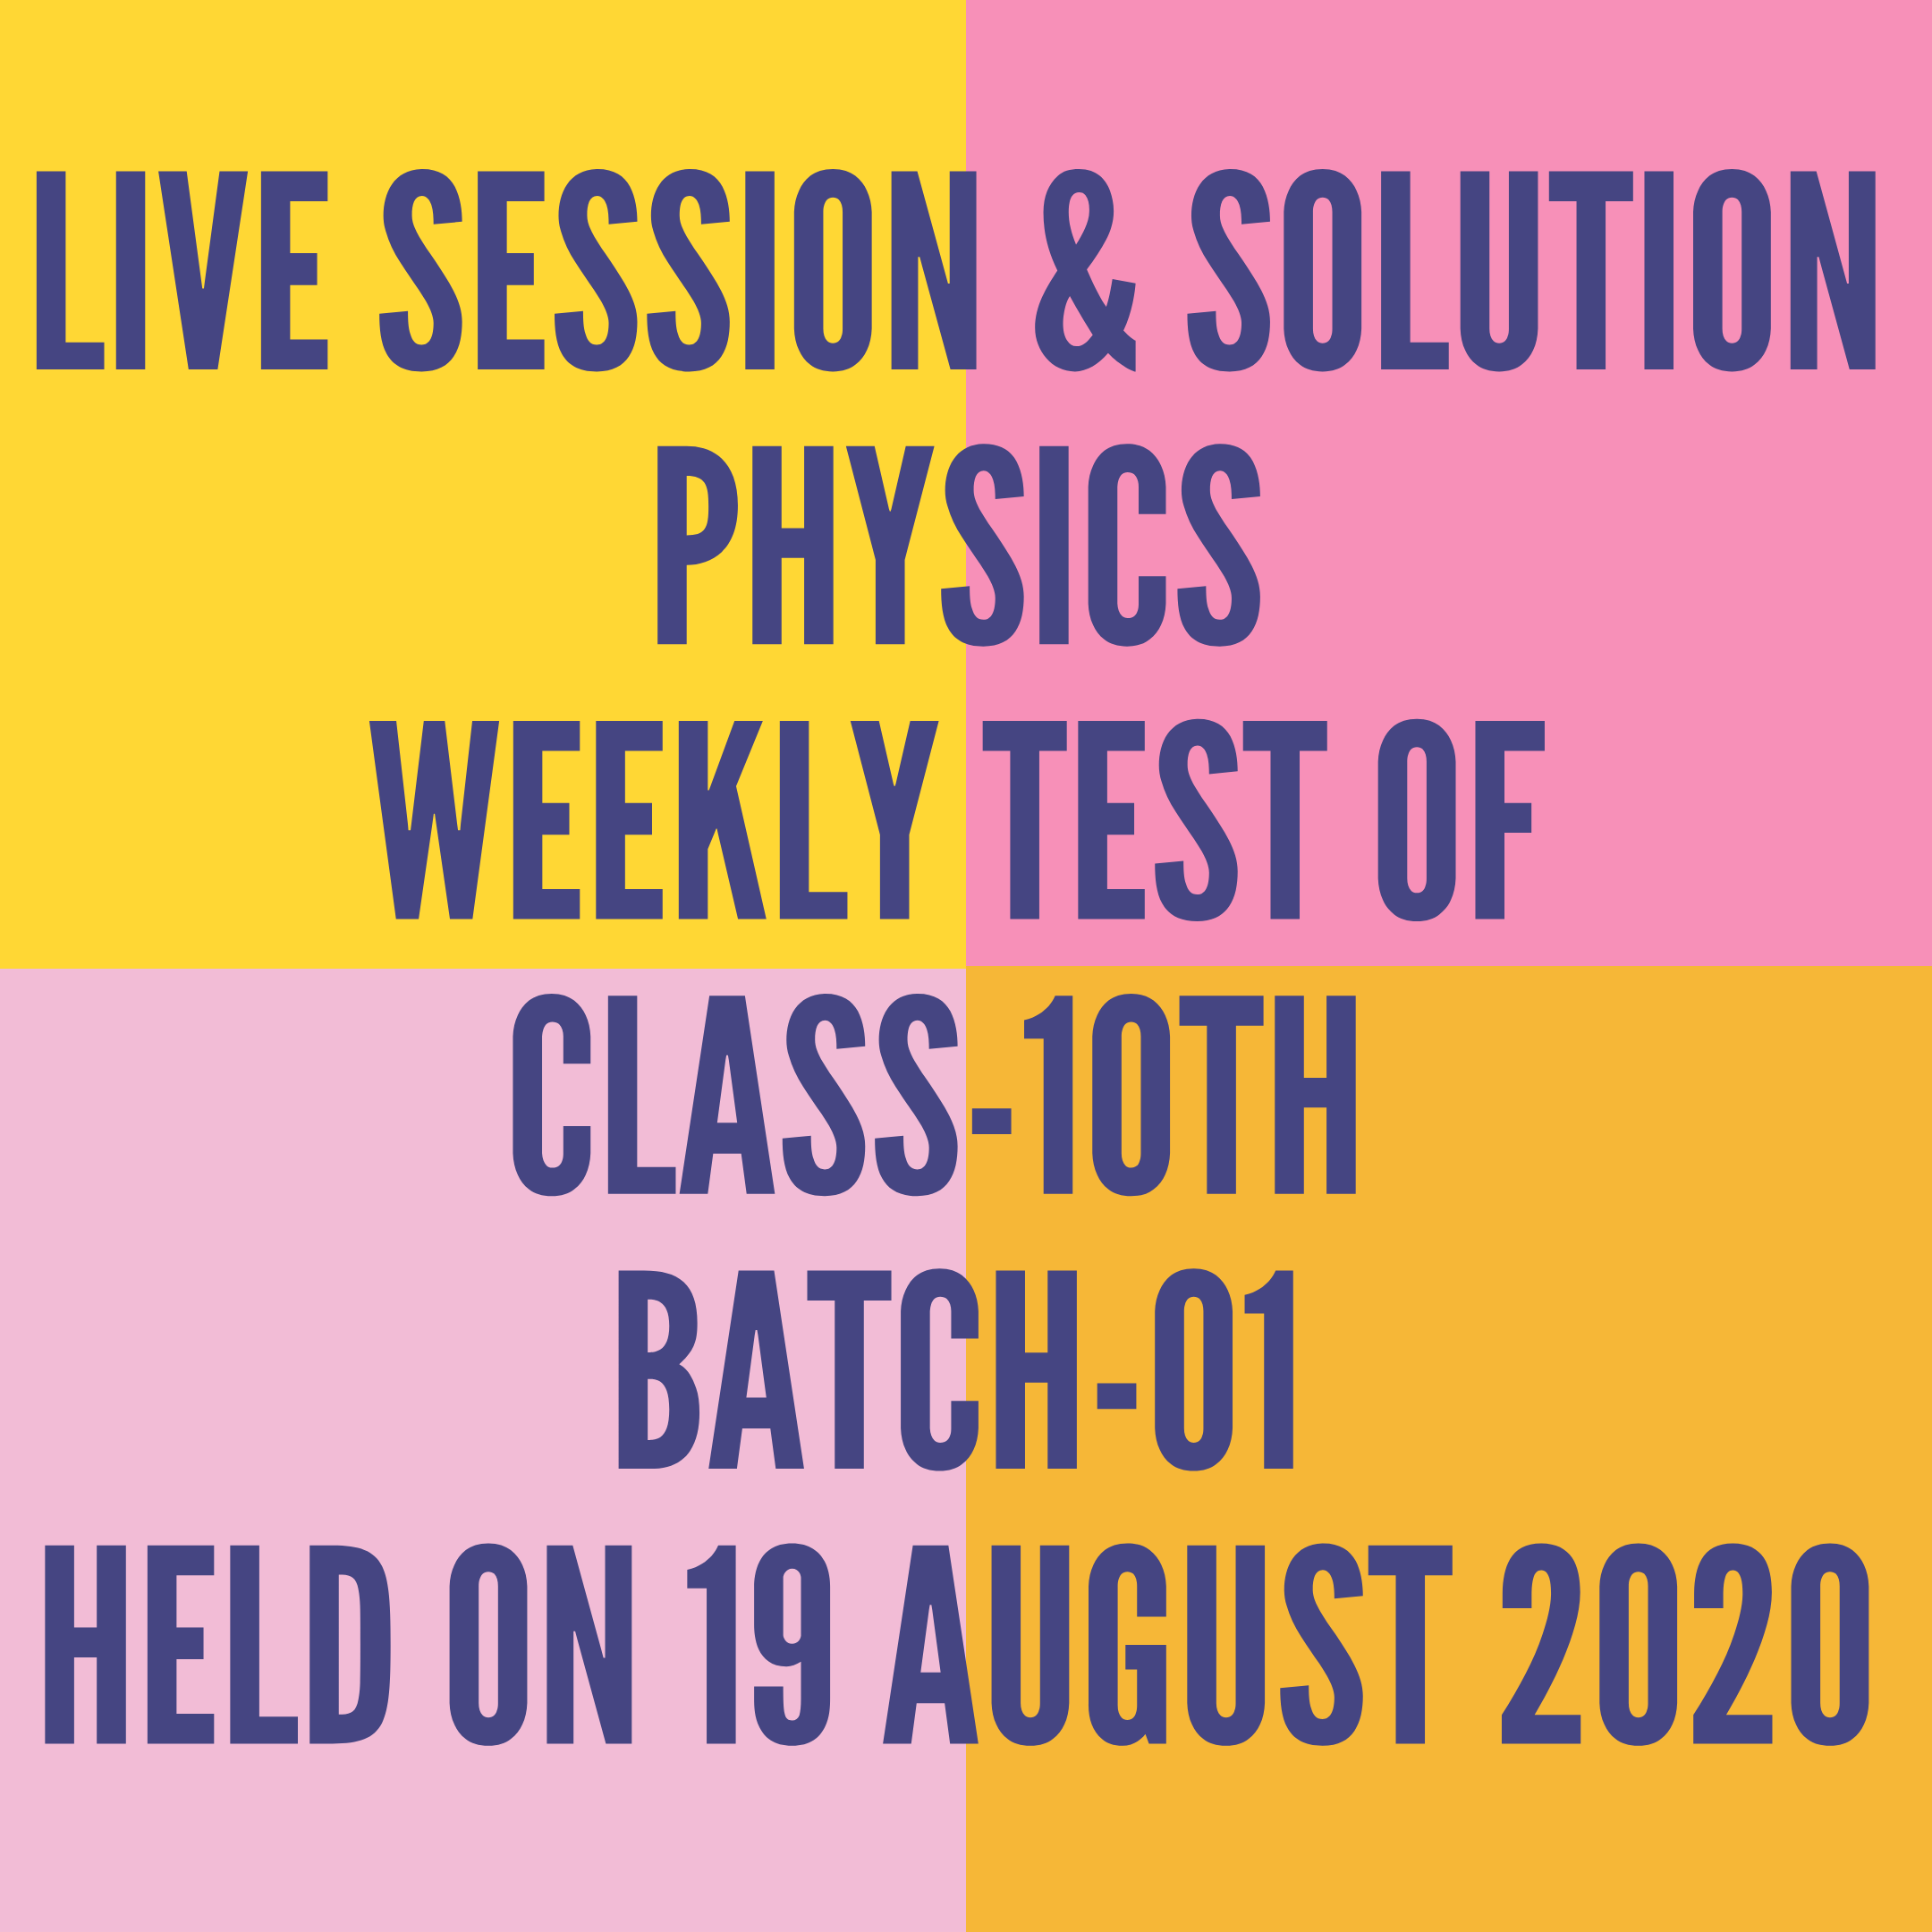 LIVE SESSION & SOLUTION PHYSICS WEEKLY TEST OF CLASS-10TH BATCH-01  HELD ON 19 AUGUST 2020